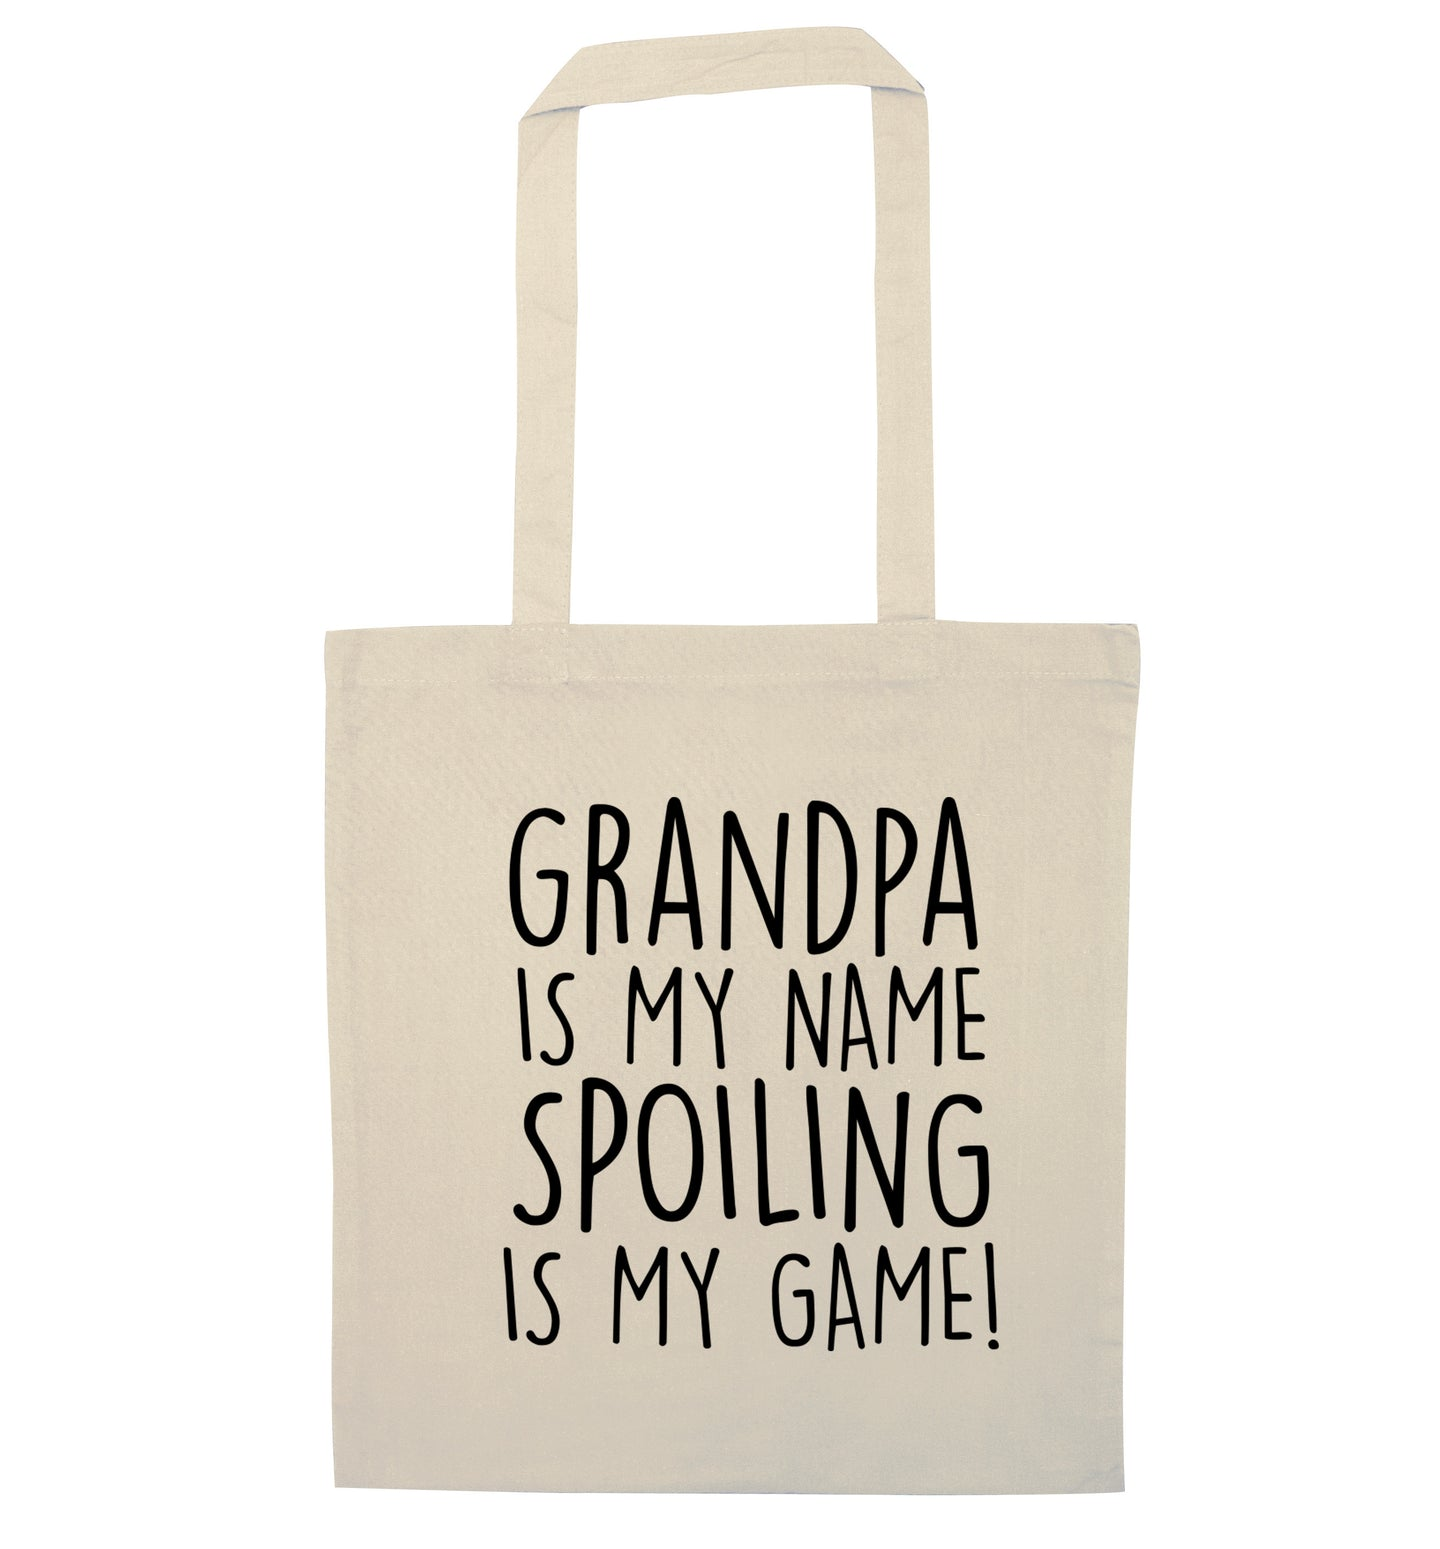 Grandpa is my name, spoiling is my game natural tote bag